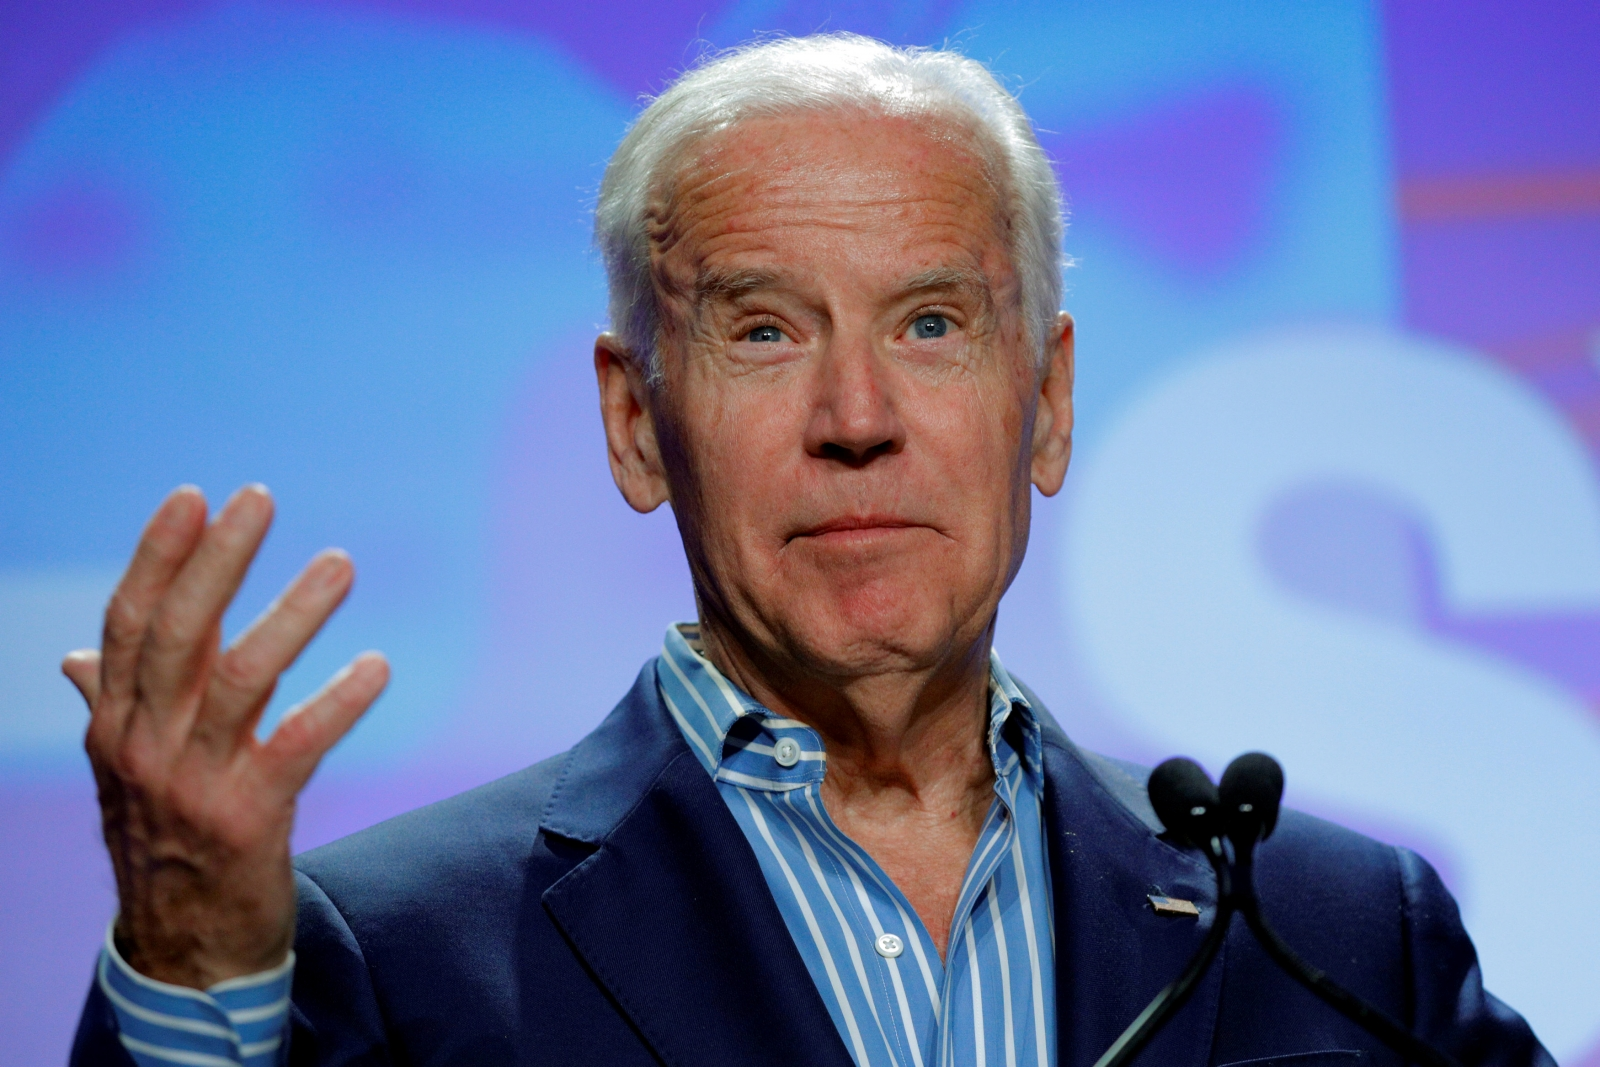 joe biden trump administration did not want to work on